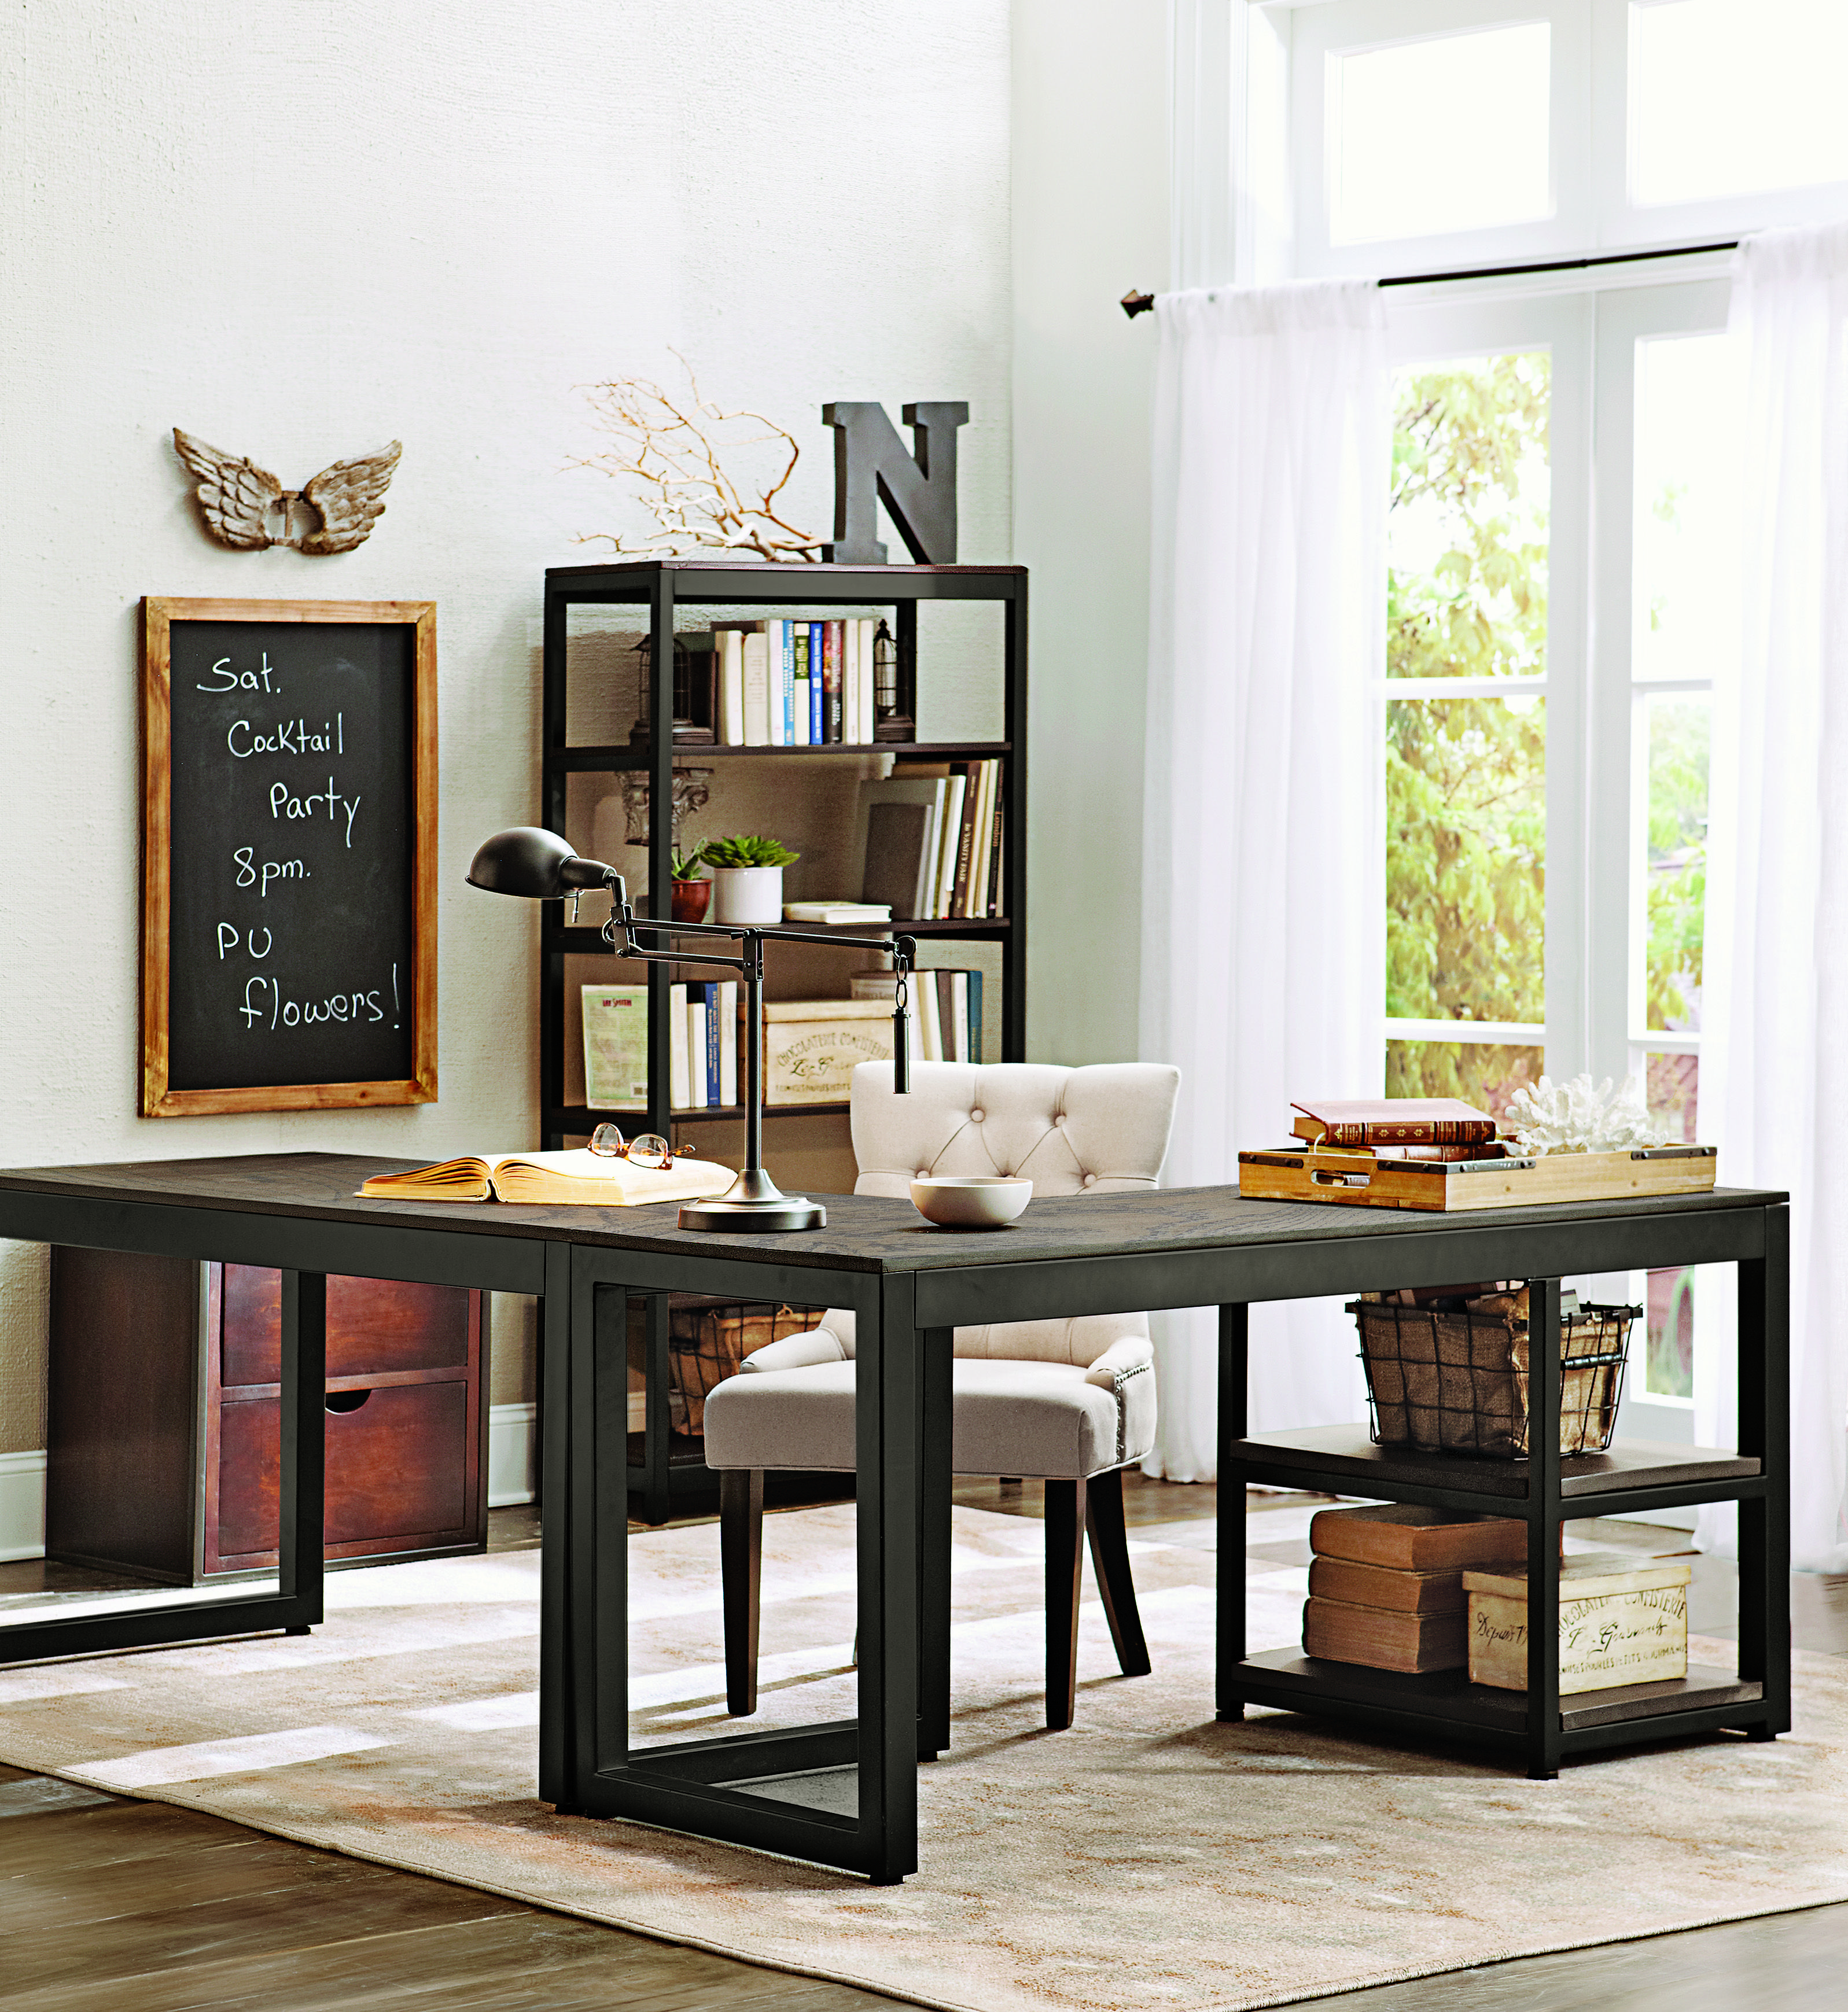 industrial style home office. an open and airy, industrial-style office space that works. homedecorators.com industrial style home